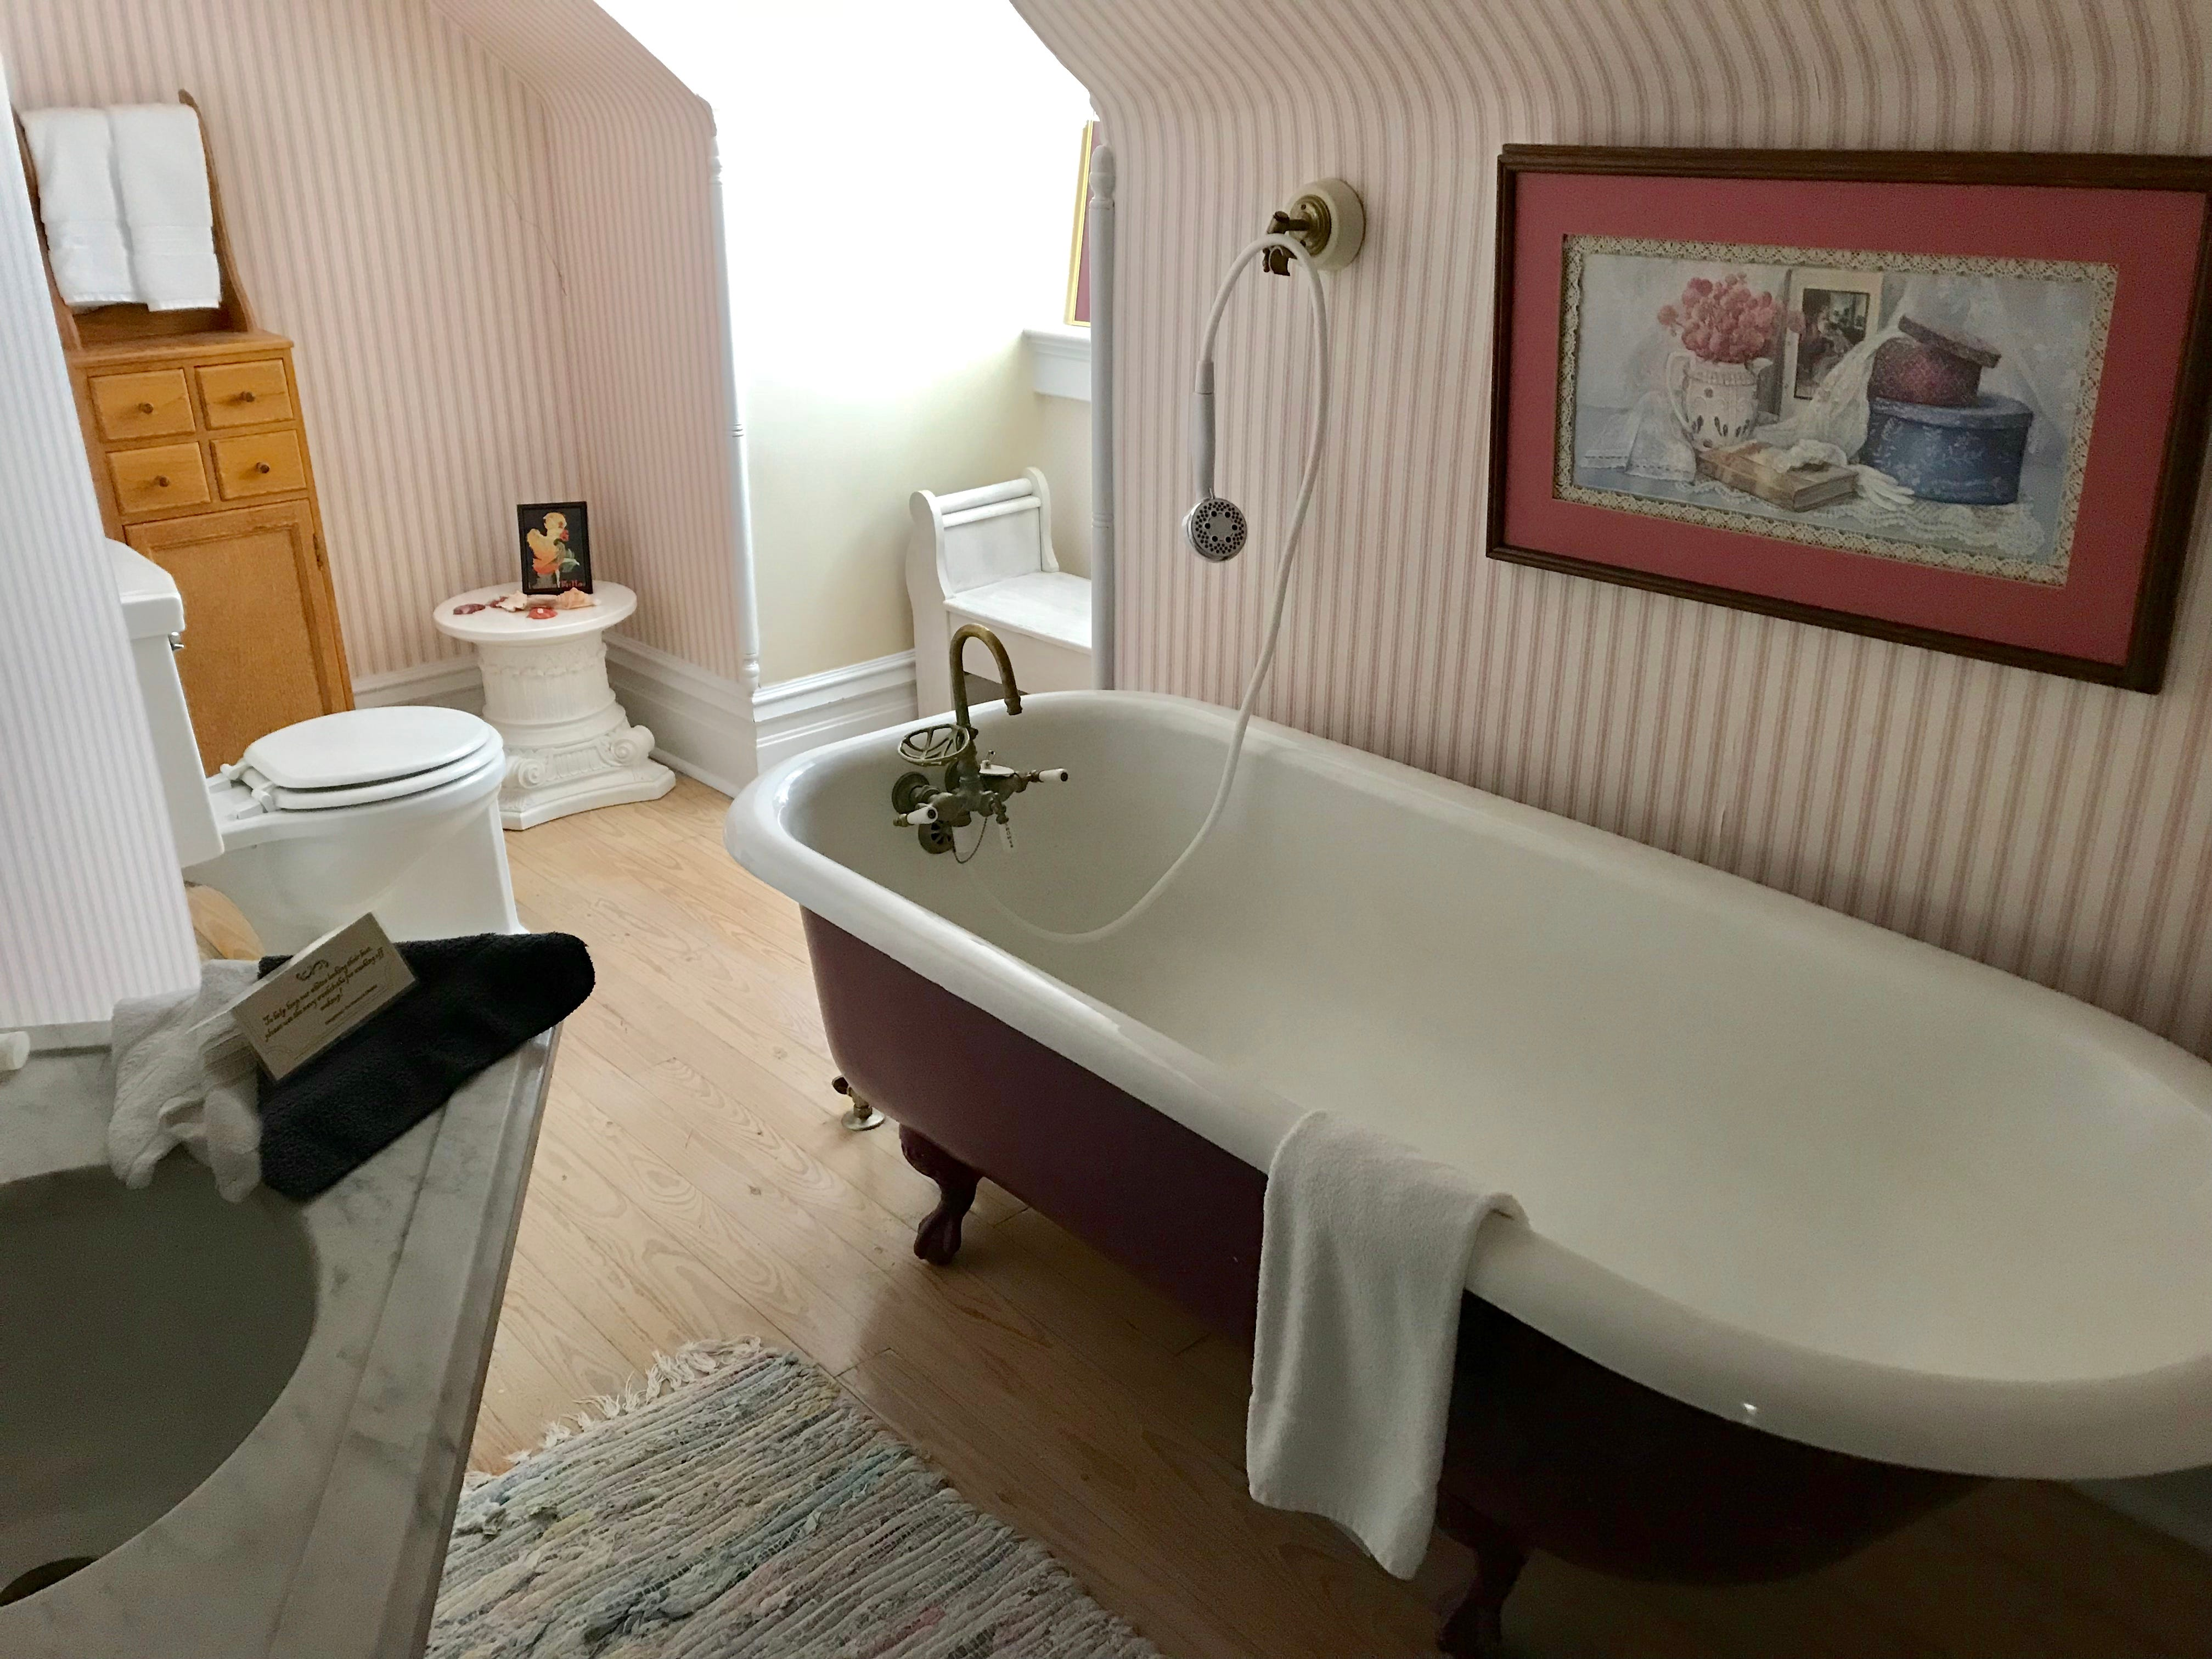 The Elfindale Mansion offers 13 bedrooms. This one has a large bathtub.